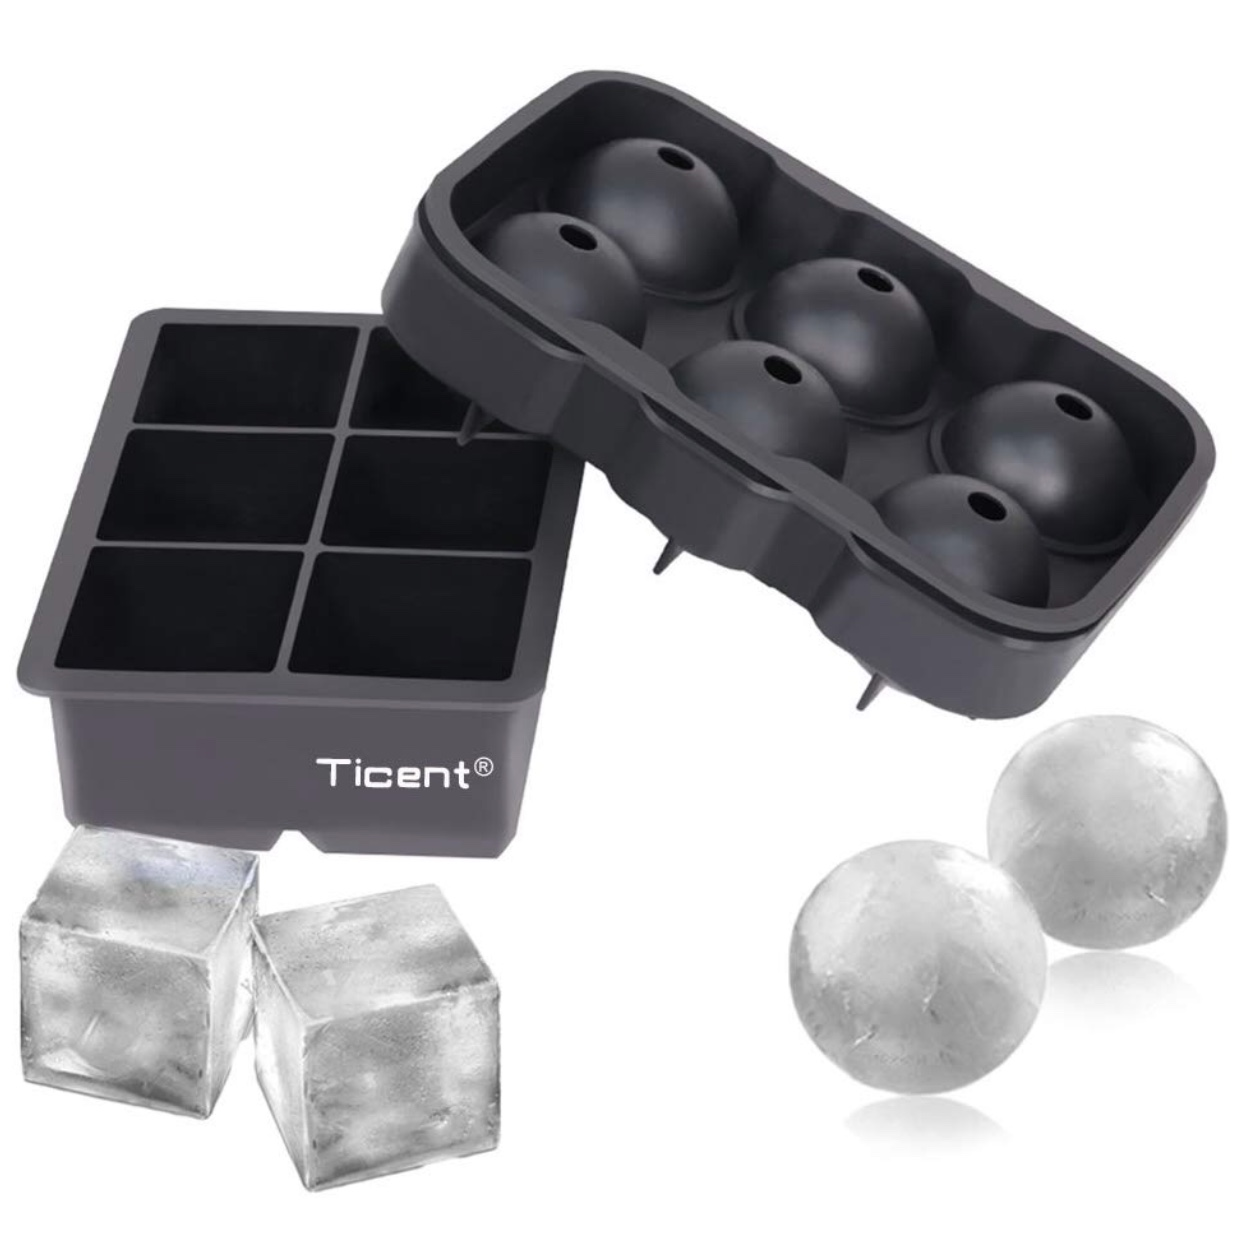 Gifts for people who like to drink: Ice Cube Trays for large ice cubes. Great for drinks on the rocks!